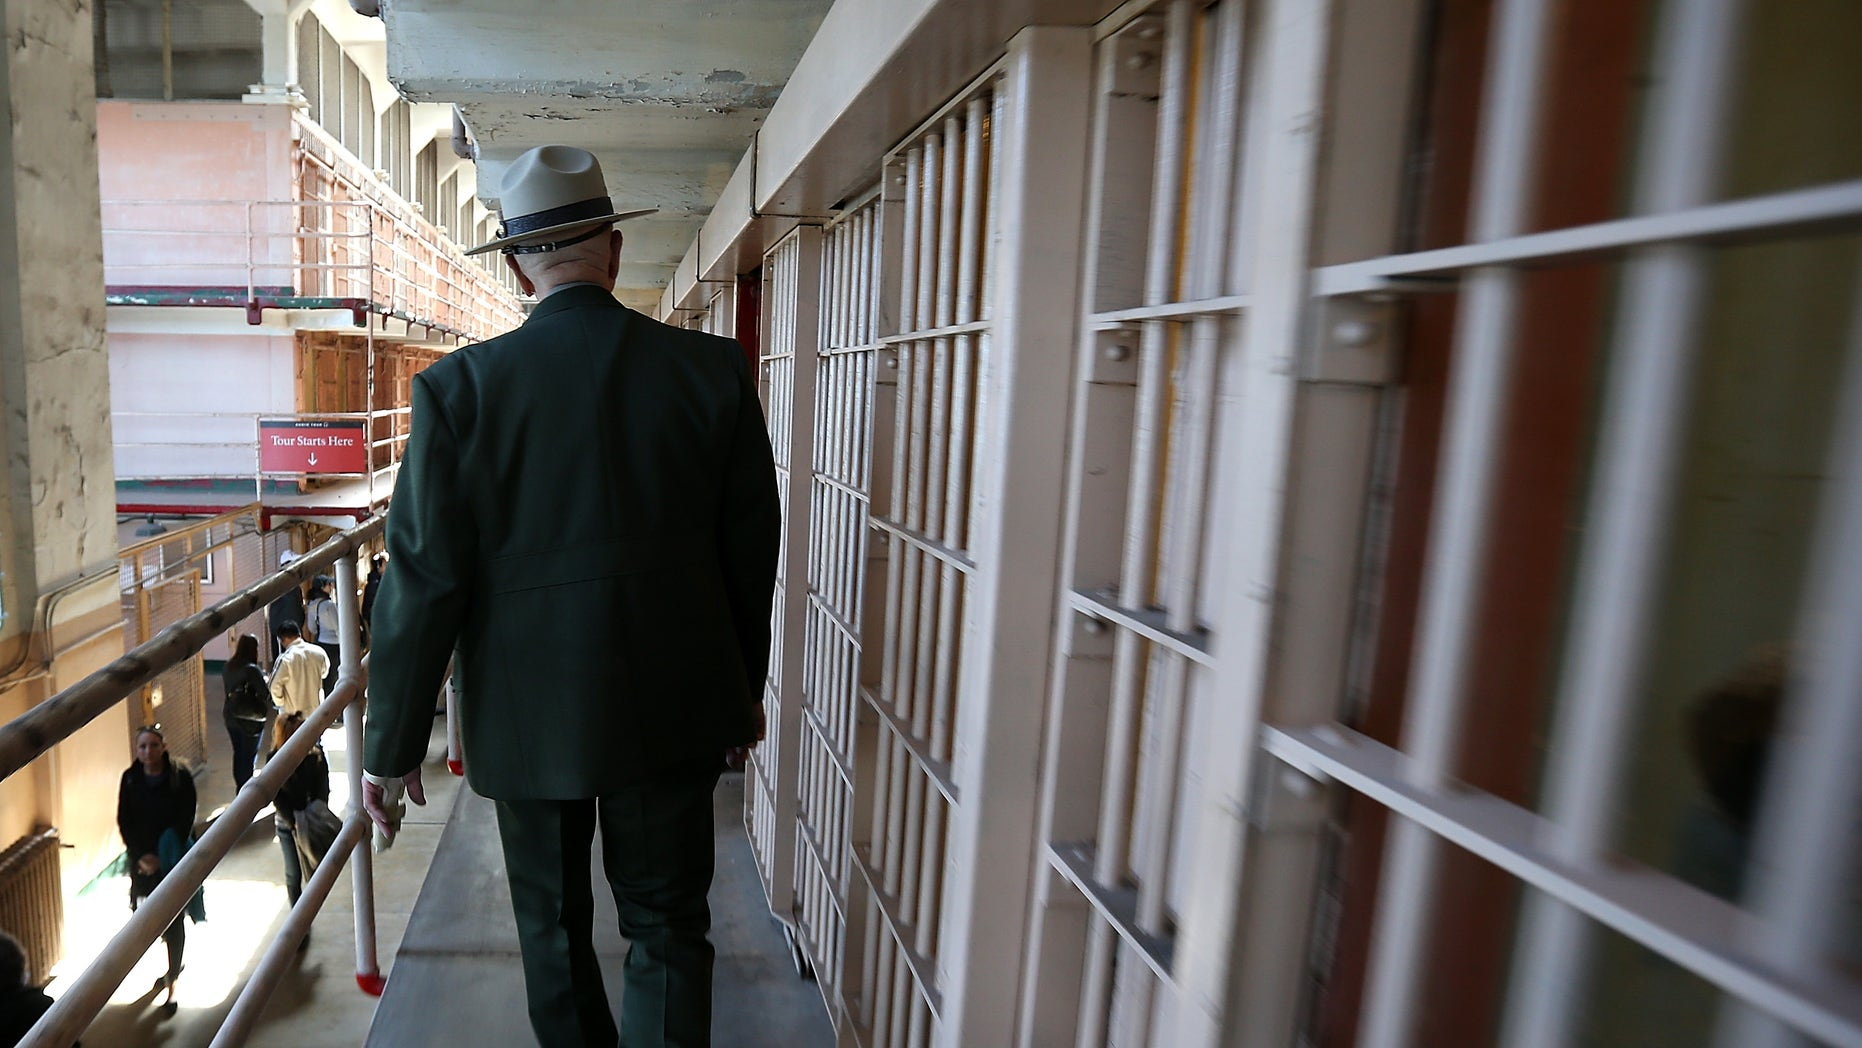 SAN FRANCISCO, CA - MARCH 21:  National Park Service ranger Roger Goldberg walks through the main cell block at Alcatraz Island on March 21, 2013 in San Francisco, California.  The National Park Service marked the 50th anniversary of the closure of the notorius Alcatraz federal penitentiary with an exhibit of newly discovered photos by Los Angeles freelance photographer Leigh Wiener of the prison's final day in 1963. Alcatraz was first a fort and later became an Army disciplinary barracks before being taken over by the Bureau of Prisons in 1934.  (Photo by Justin Sullivan/Getty Images)